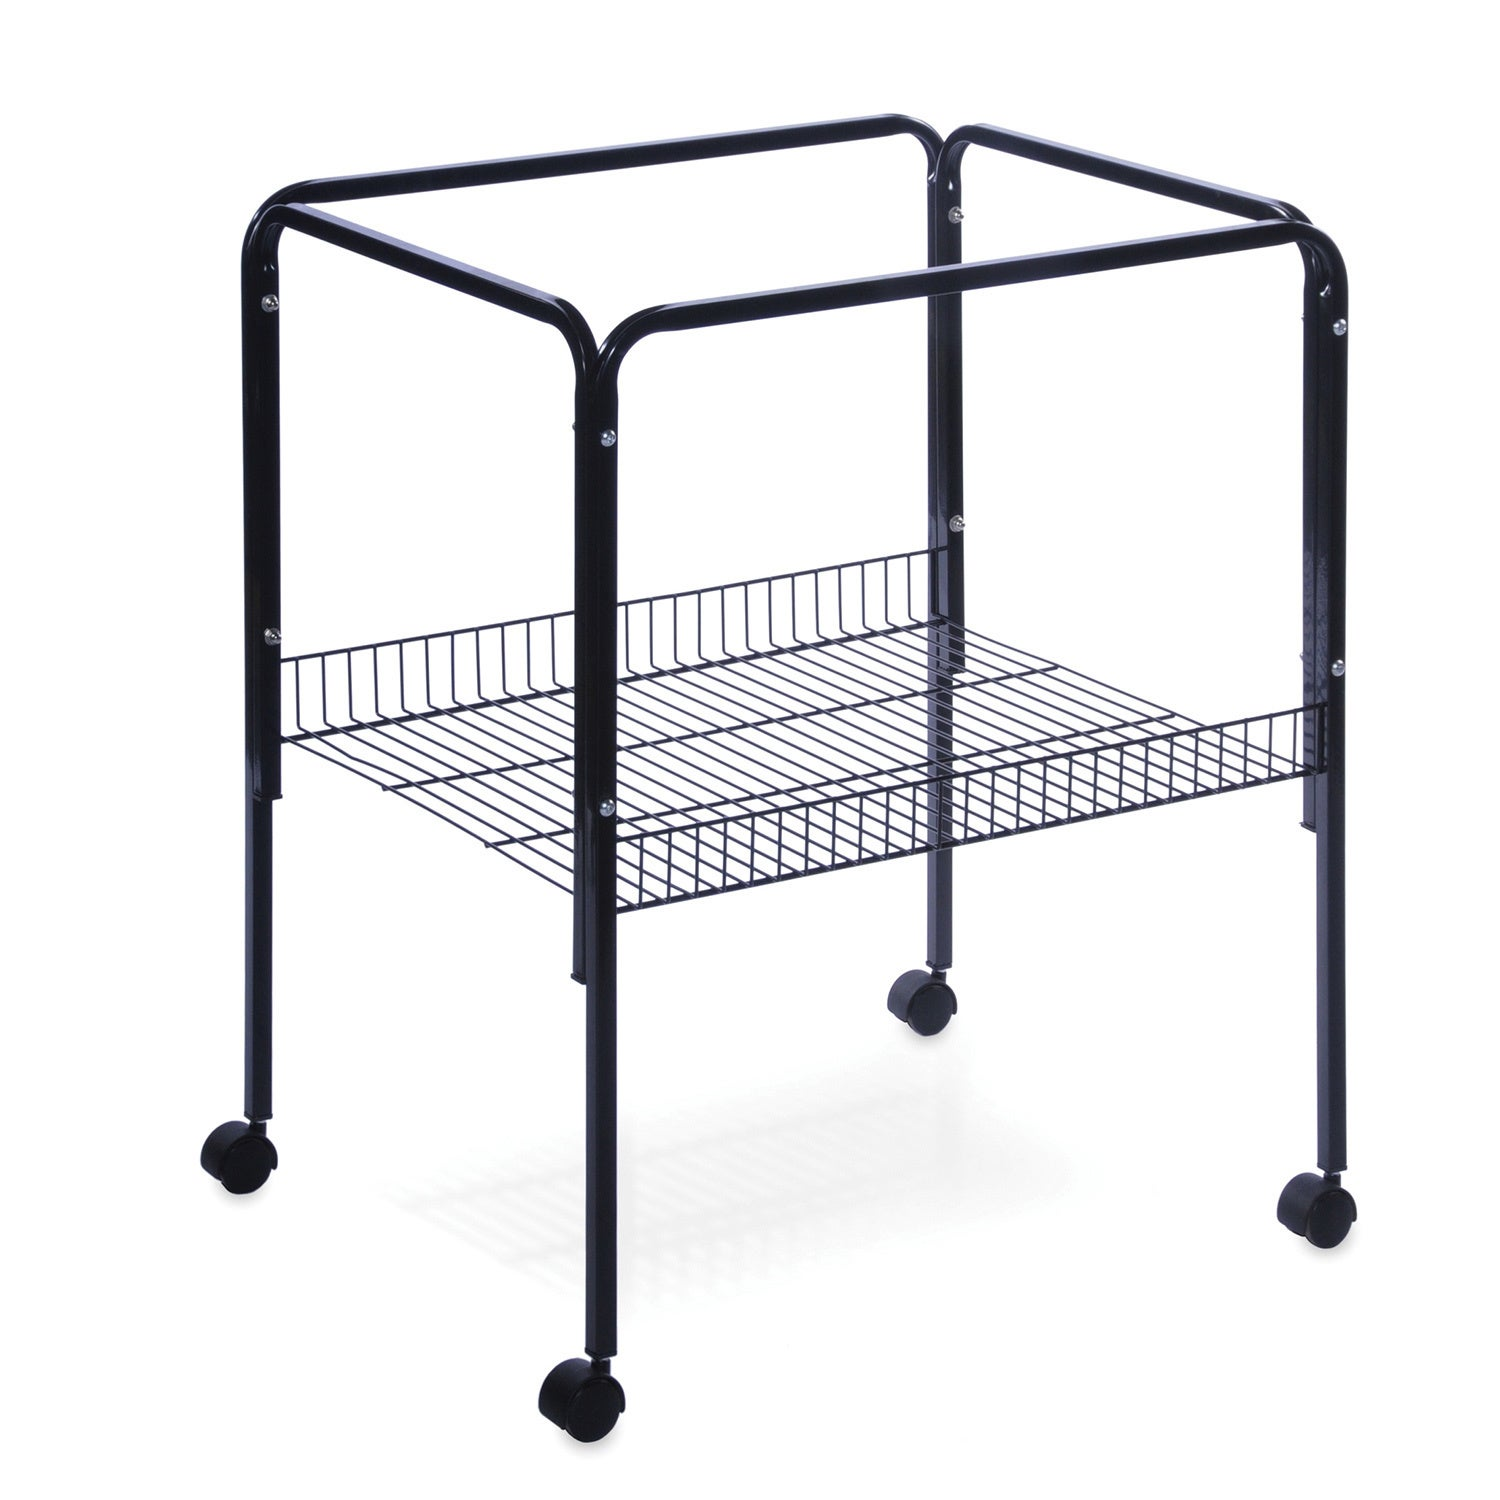 Prevue Pet Products Black Bird Cage Stand with Shelf (Black)